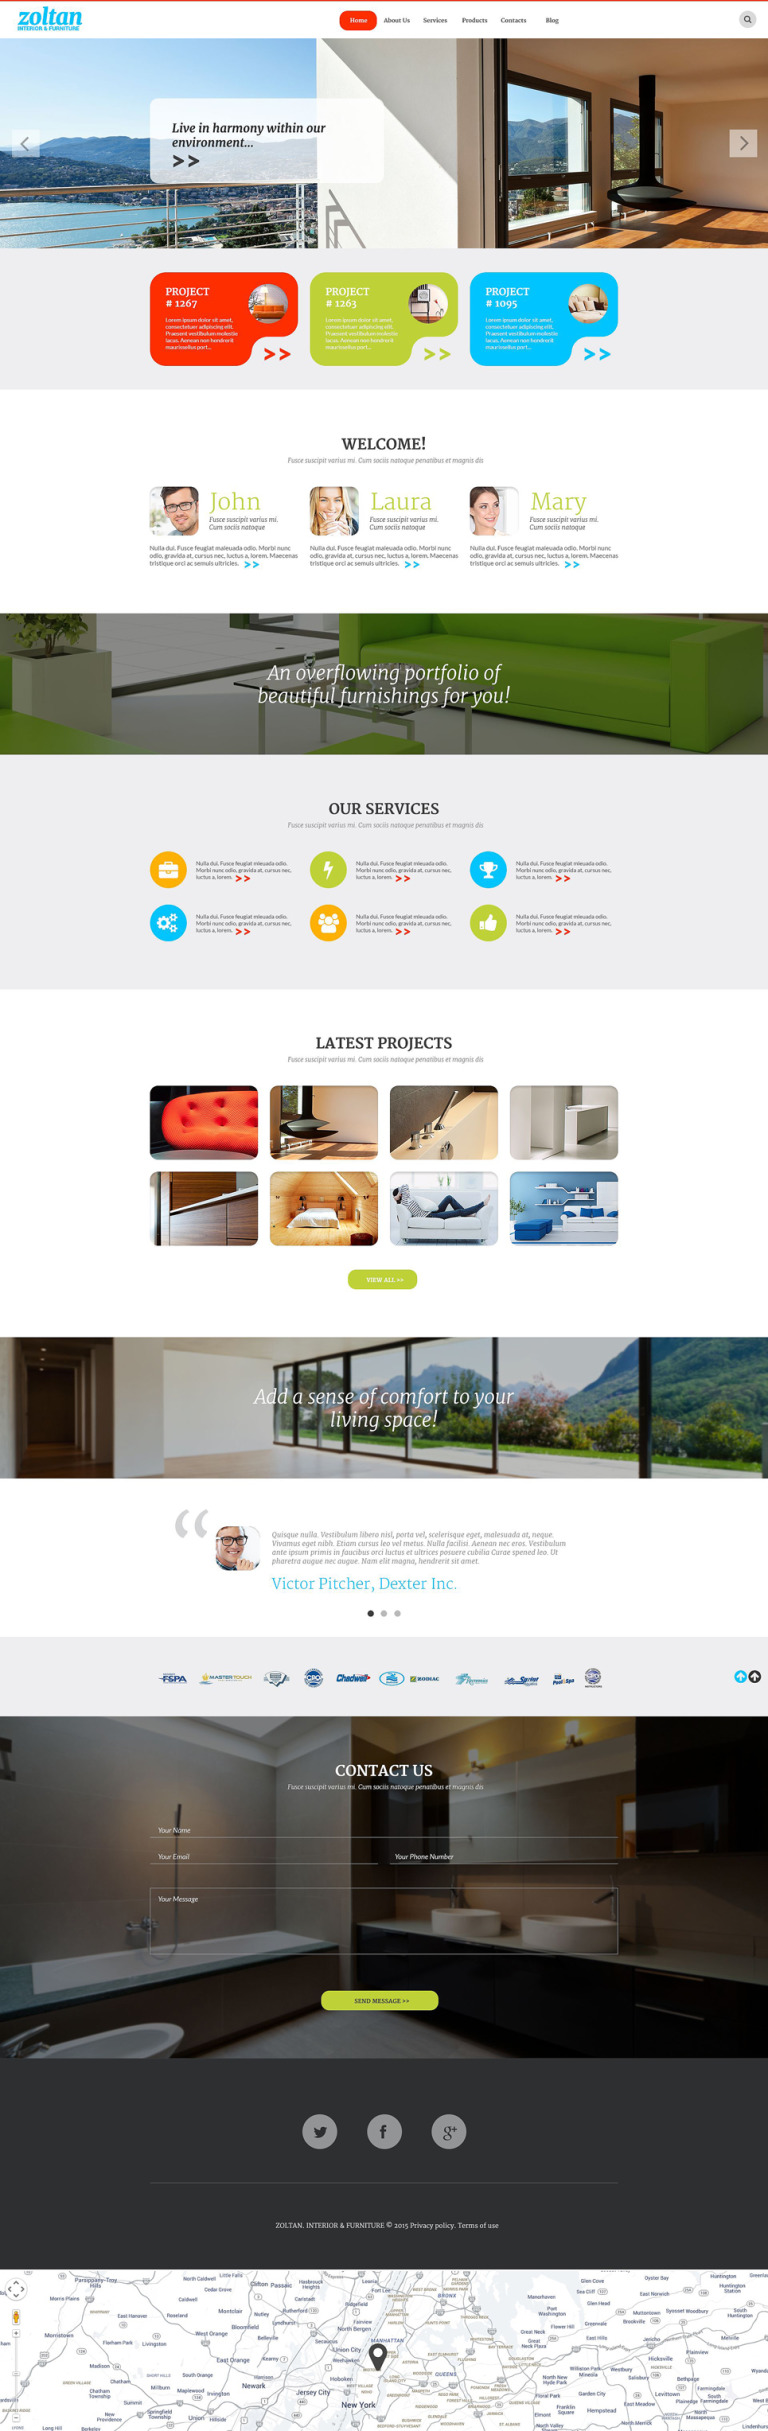 Zoltan WordPress Theme New Screenshots BIG